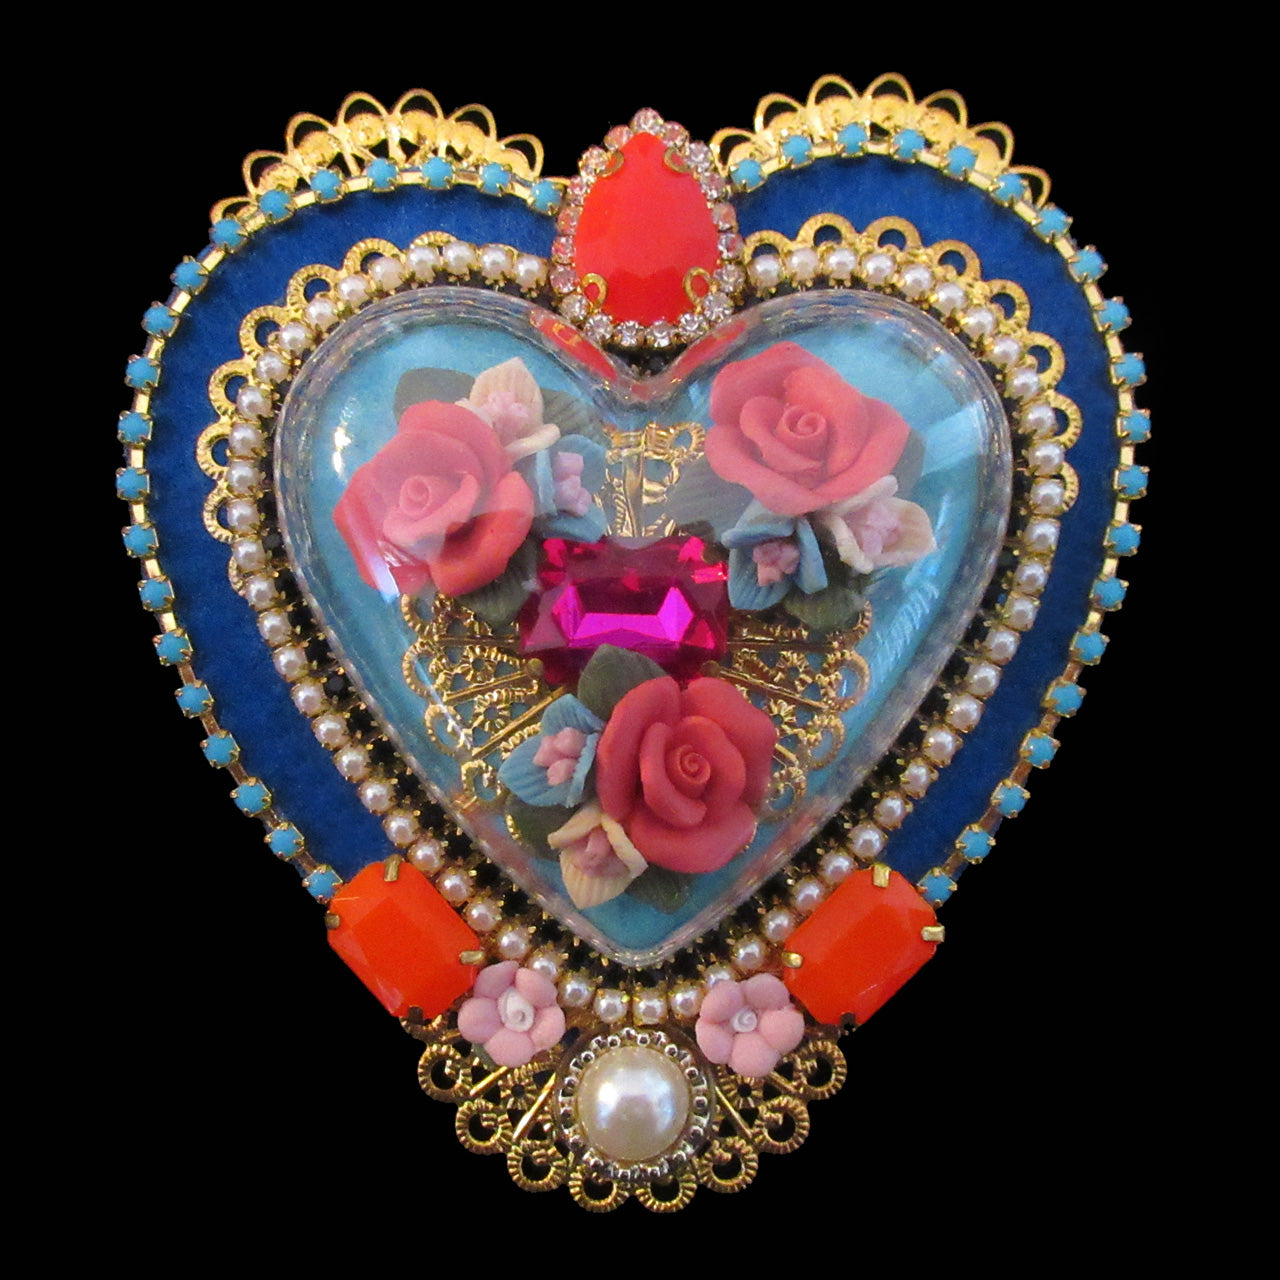 mouchkine jewelry unique pieces couture heart brooch. handmade in france.